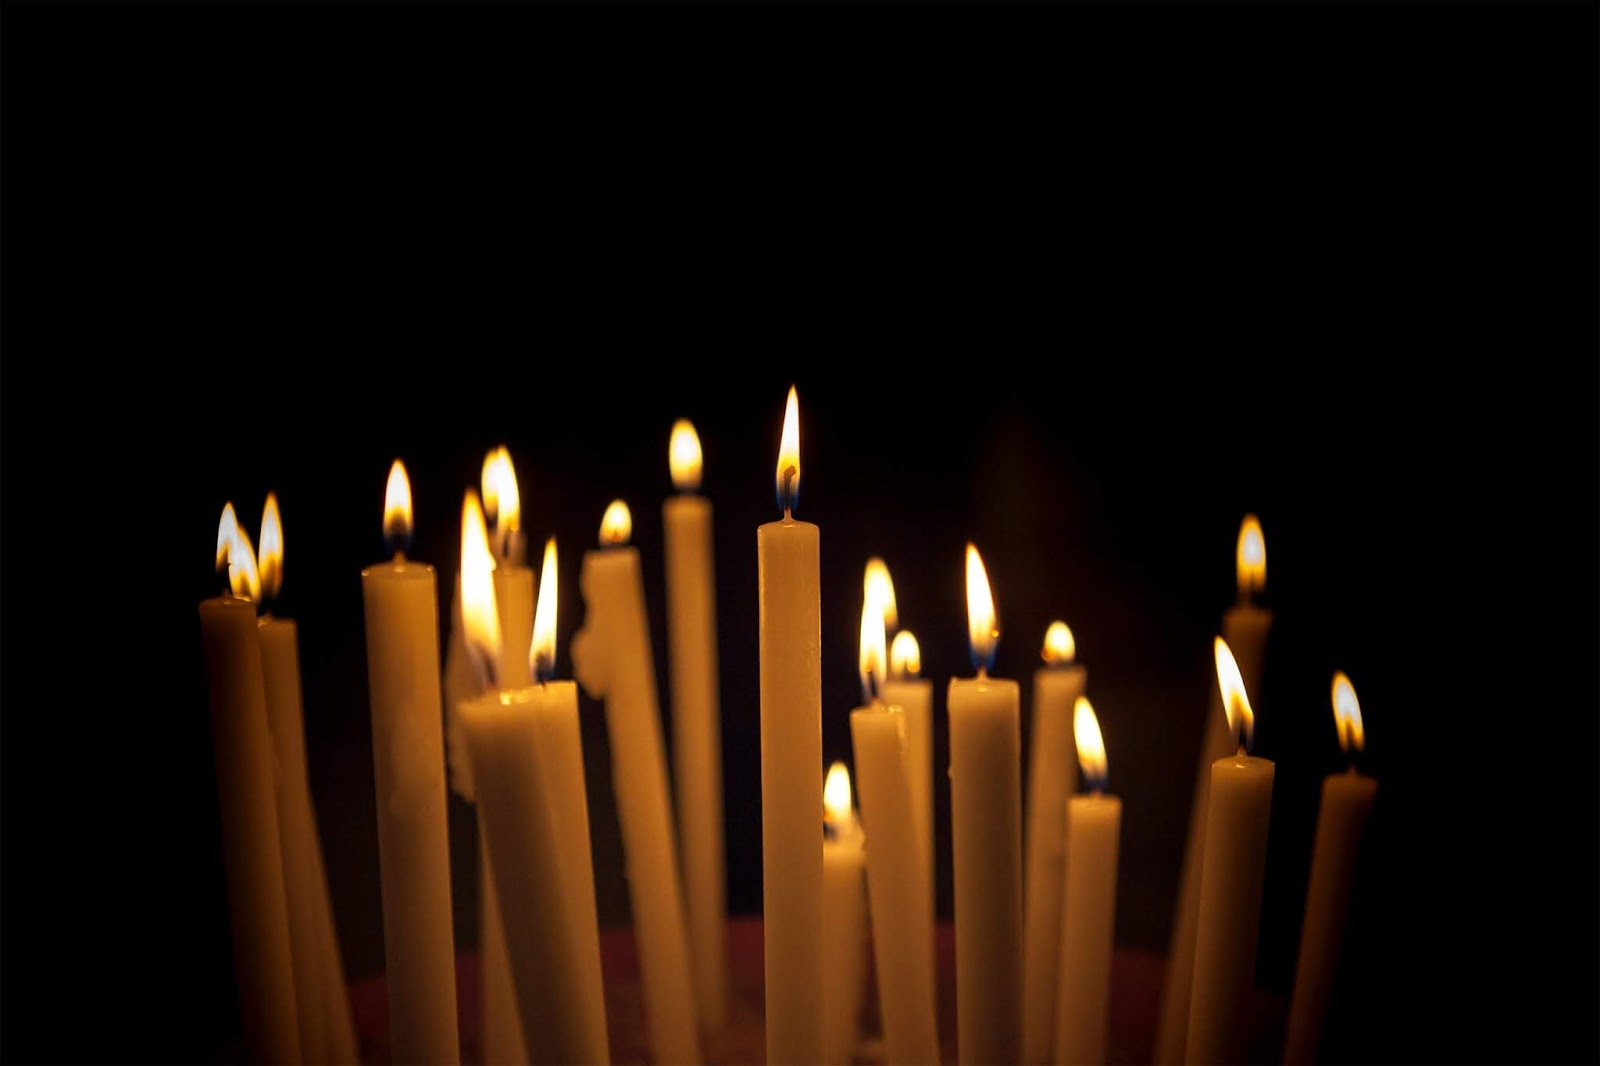 21 white taper candles lit in the dark, against a pitch black background